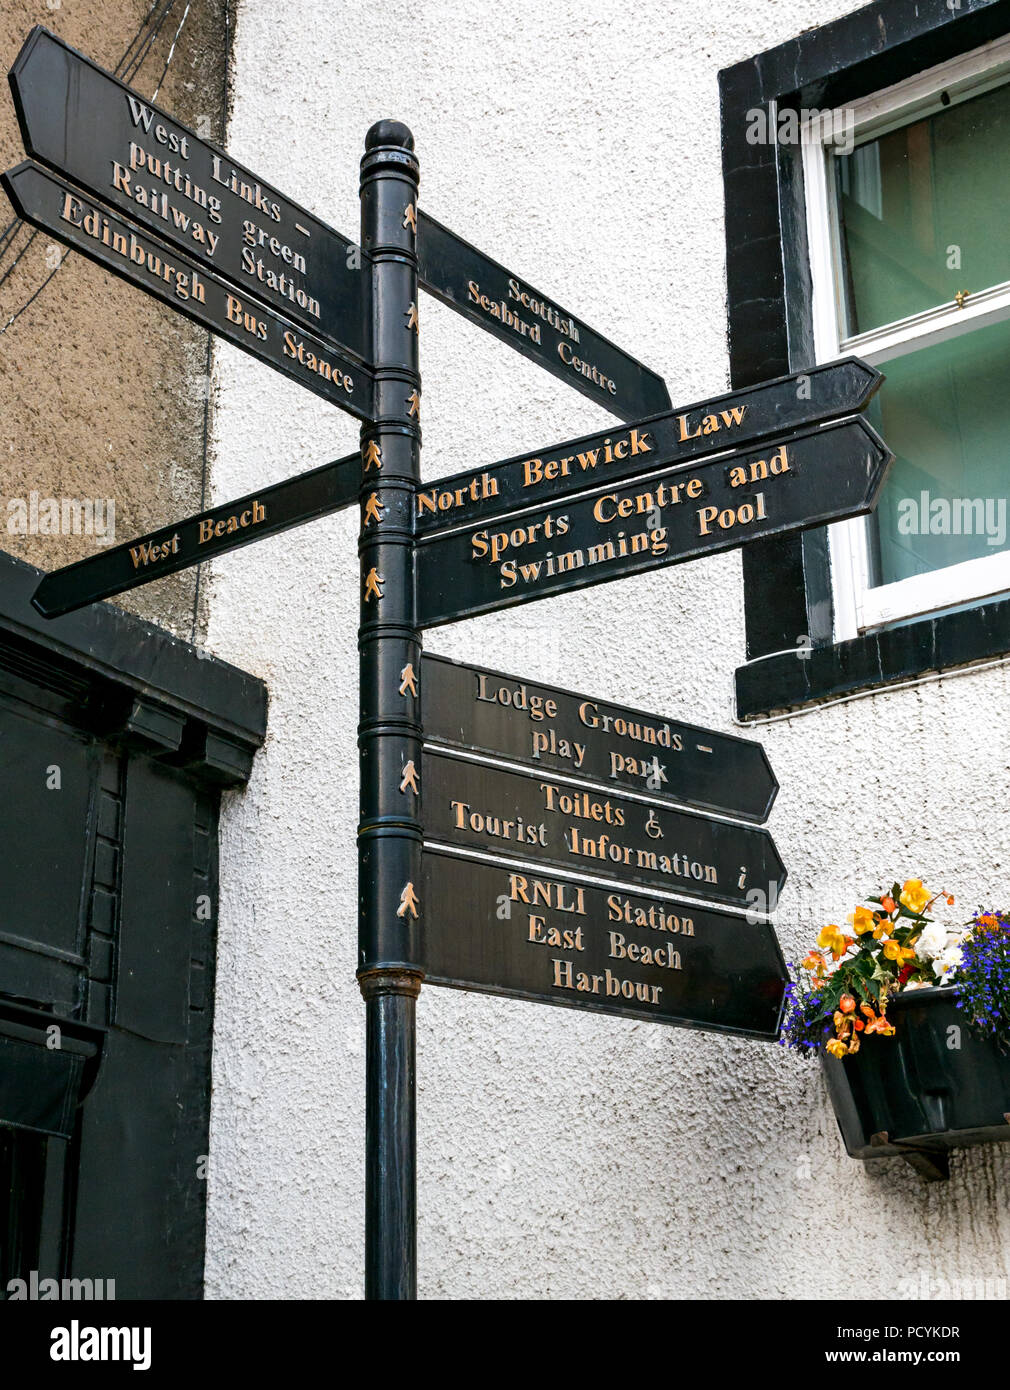 Signpost to points of interest for tourists, North Berwick, East Lothian, Scotland, UK - Stock Image